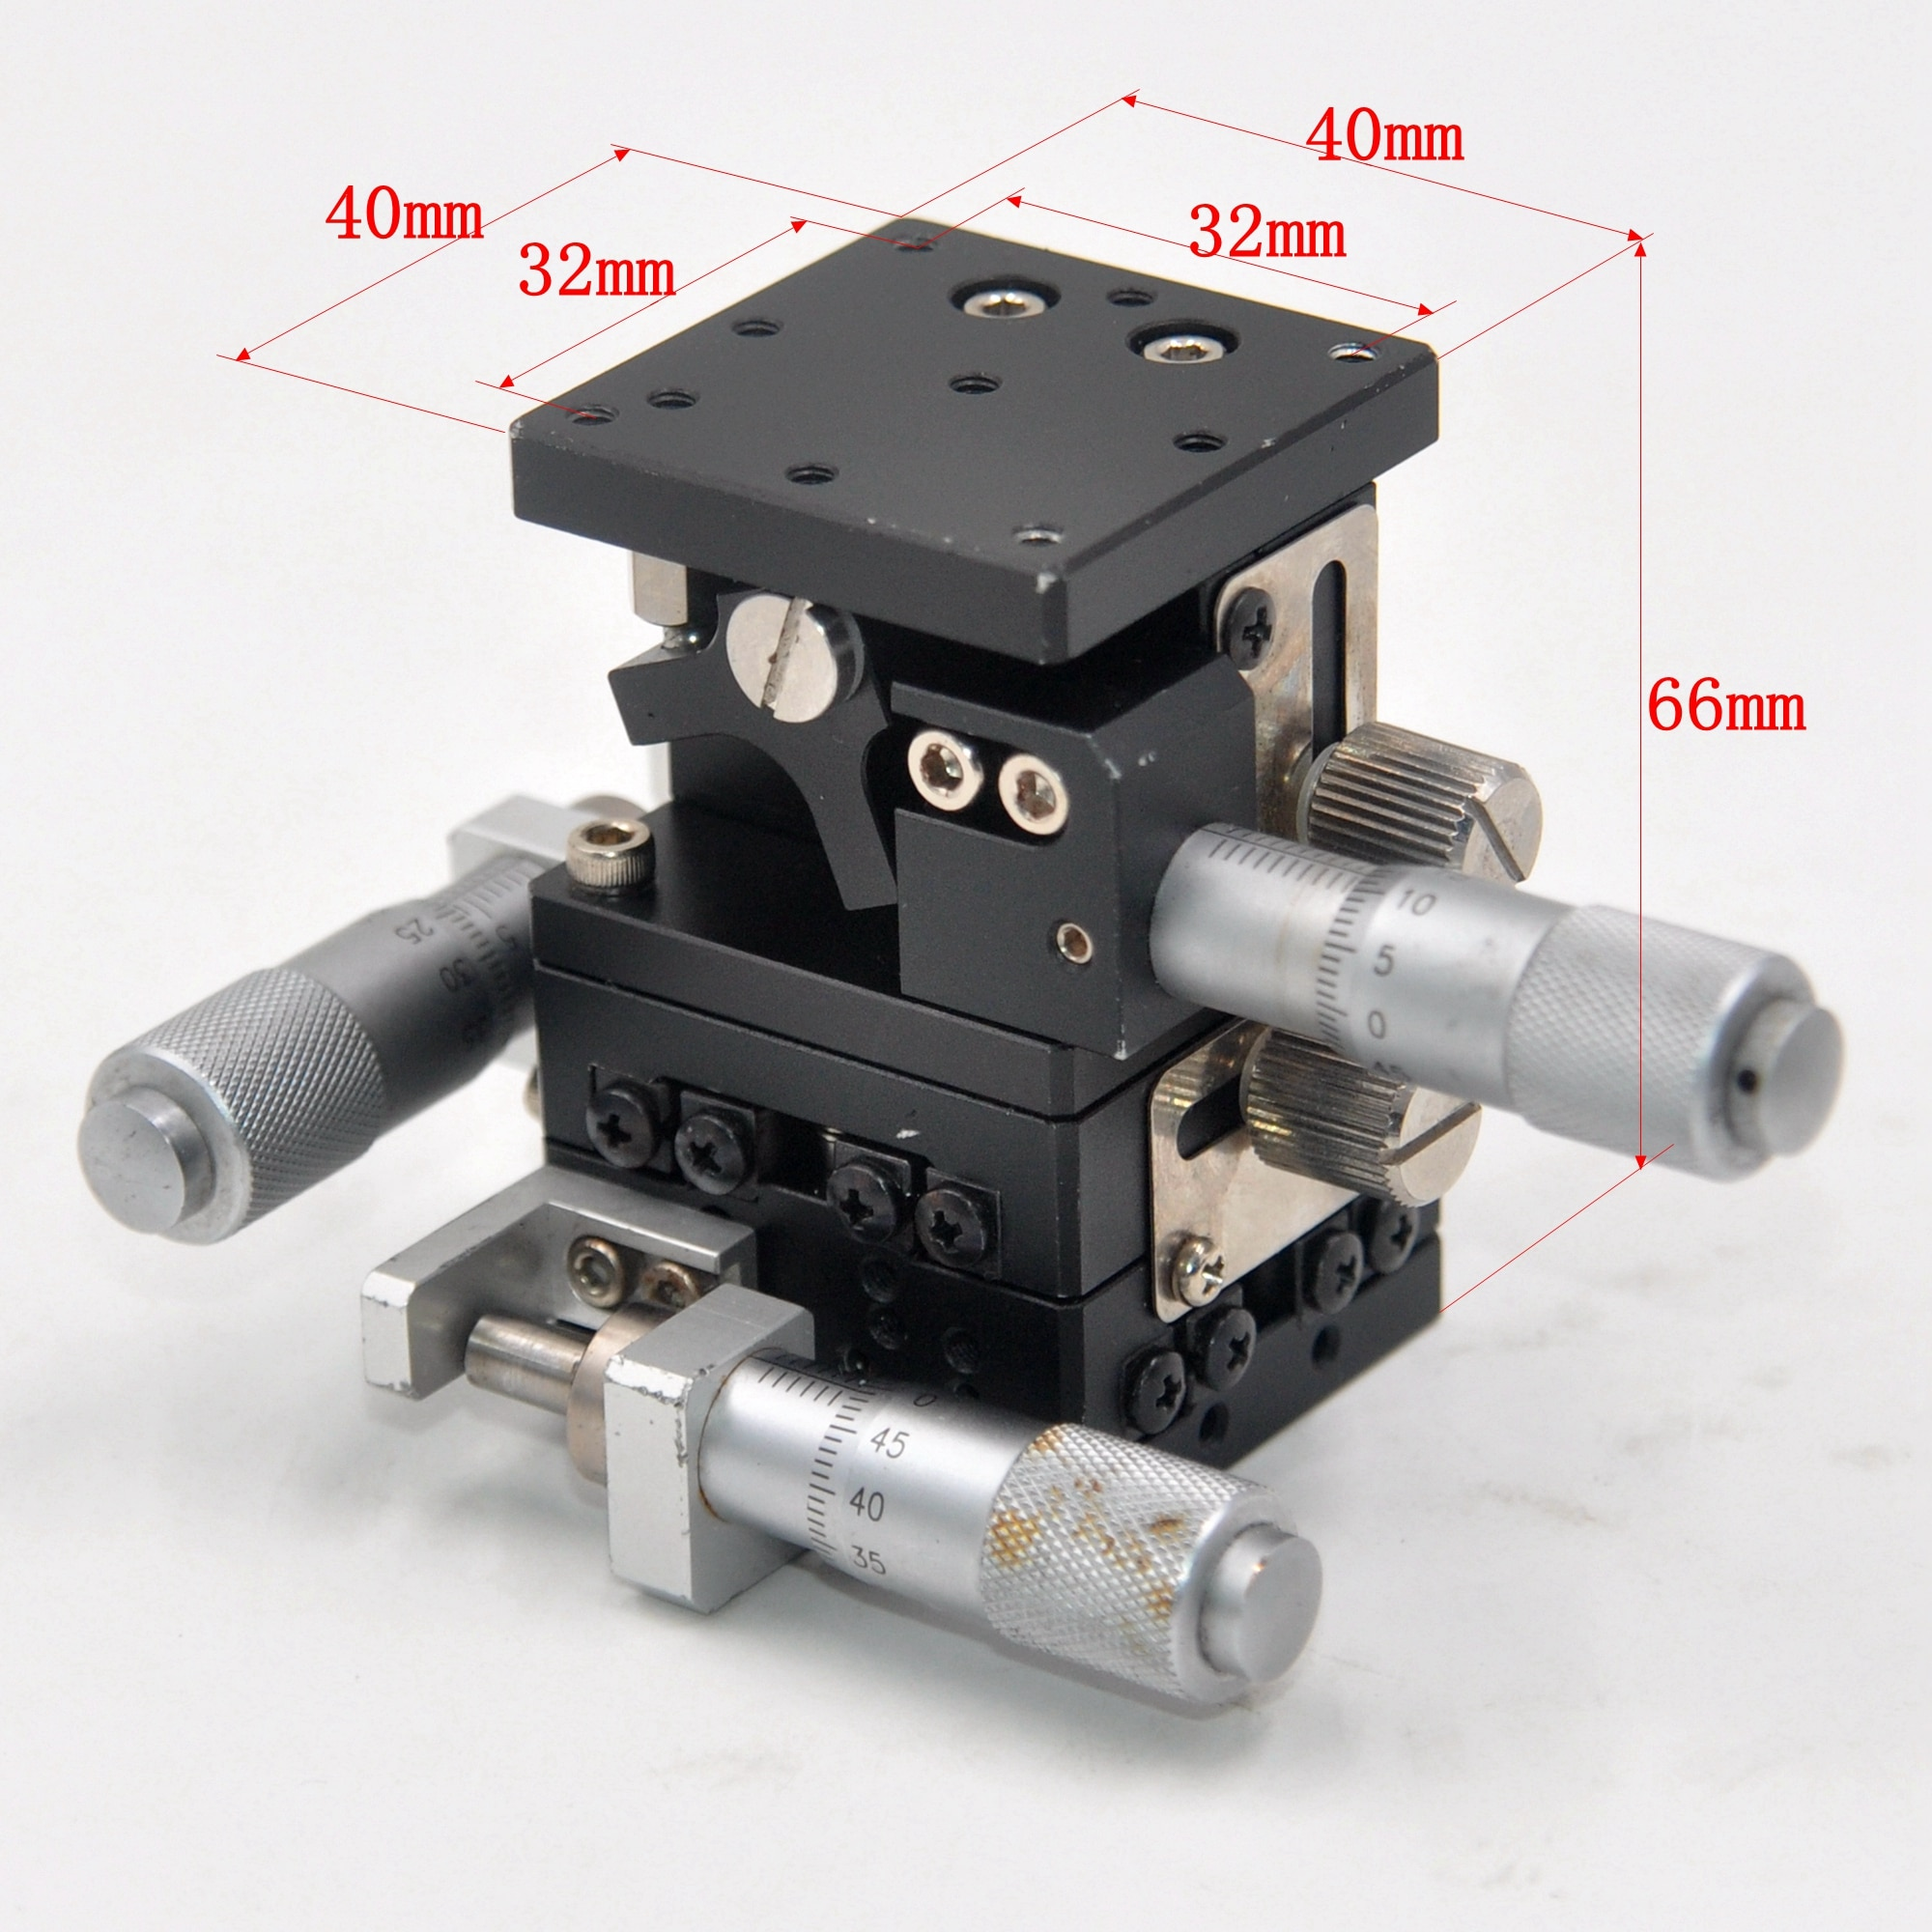 XYZ axis 40x 40mm manual fine adjustment sliding table optical displacement lifting stroke 8mm Aluminum